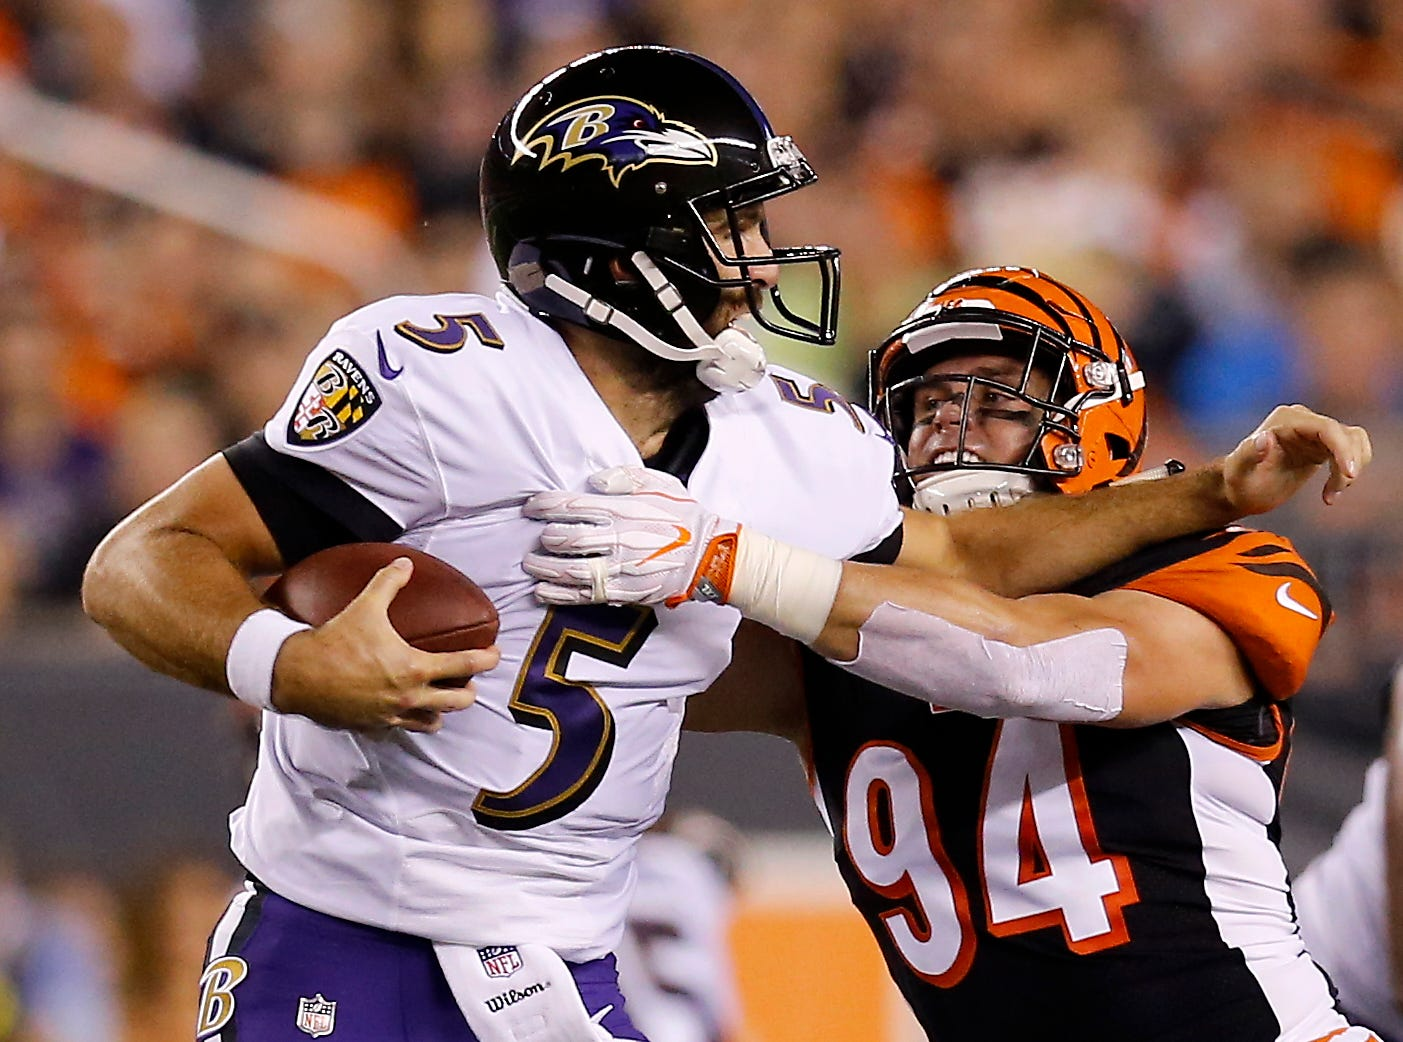 Cincinnati Bengals defensive end Sam Hubbard (94) sacks Baltimore Ravens quarterback Joe Flacco (5) in the first quarter of the NFL Week 2 game between the Cincinnati Bengals and the Baltimore Ravens at Paul Brown Stadium in downtown Cincinnati on Thursday, Sept. 13, 2018. The Bengals led 28-14 at halftime.